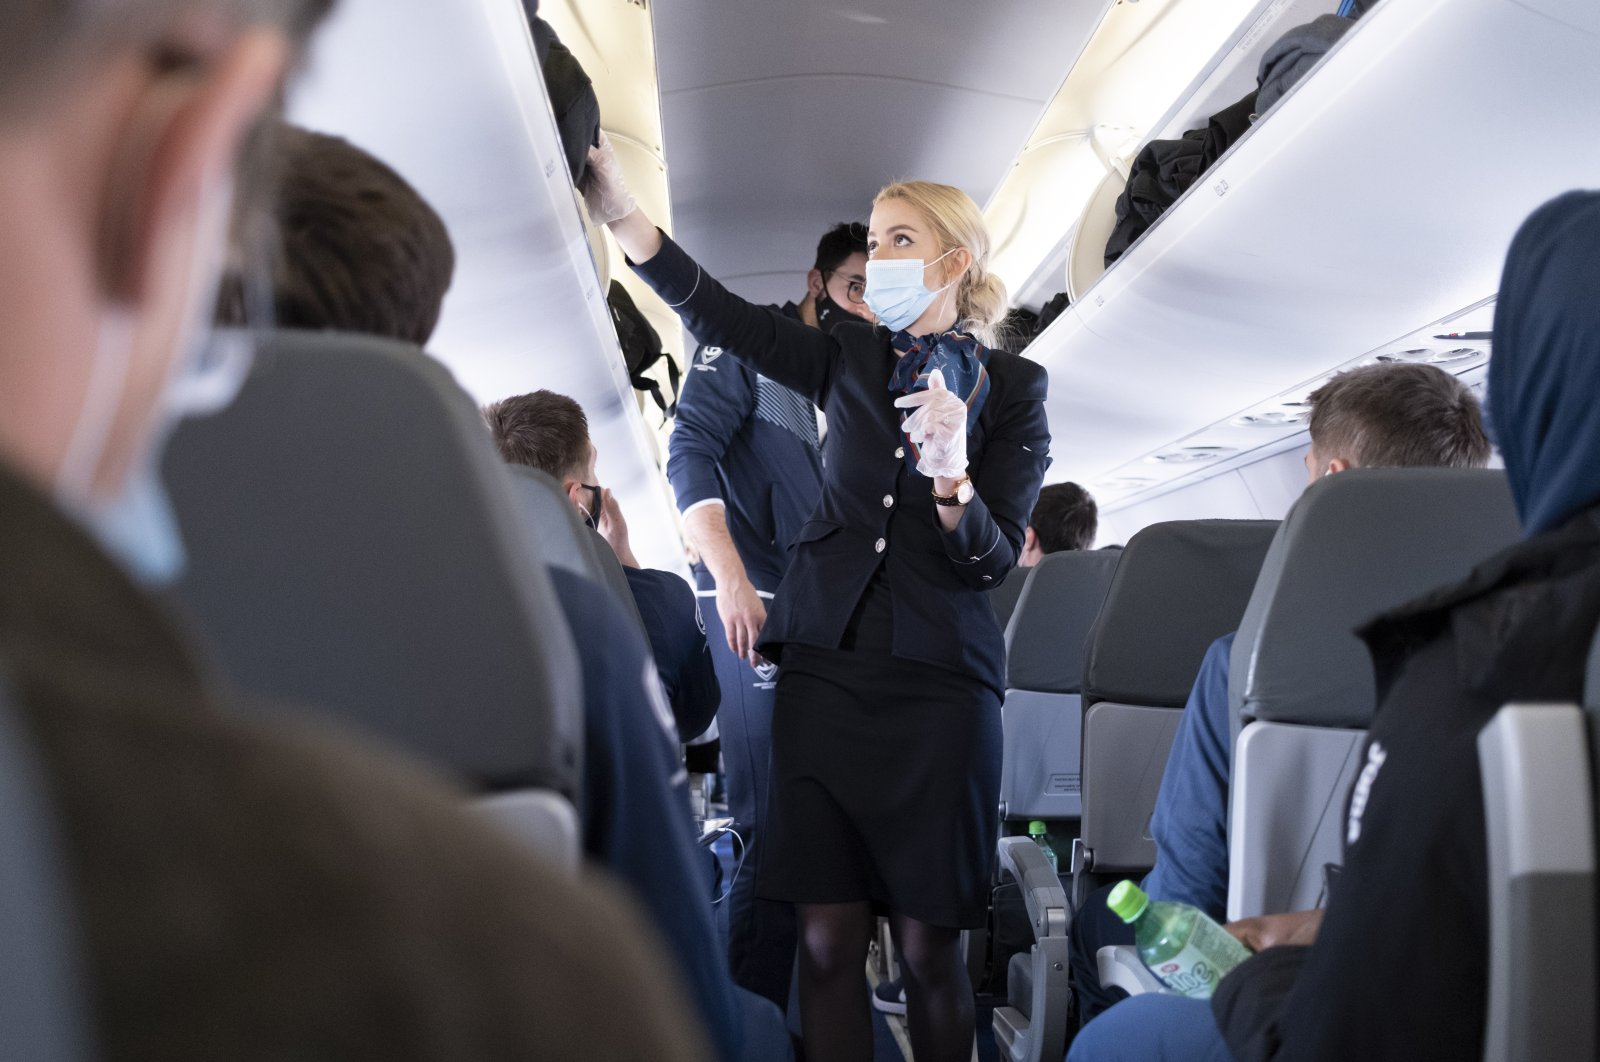 A flight attendant wearing a protective face mask speaks with passengers in a Bulgaria Air flight to Sofia, Bulgaria during the coronavirus (COVID-19) outbreak, Zurich, Switzerland, March 26, 2021. (EPA Photo)